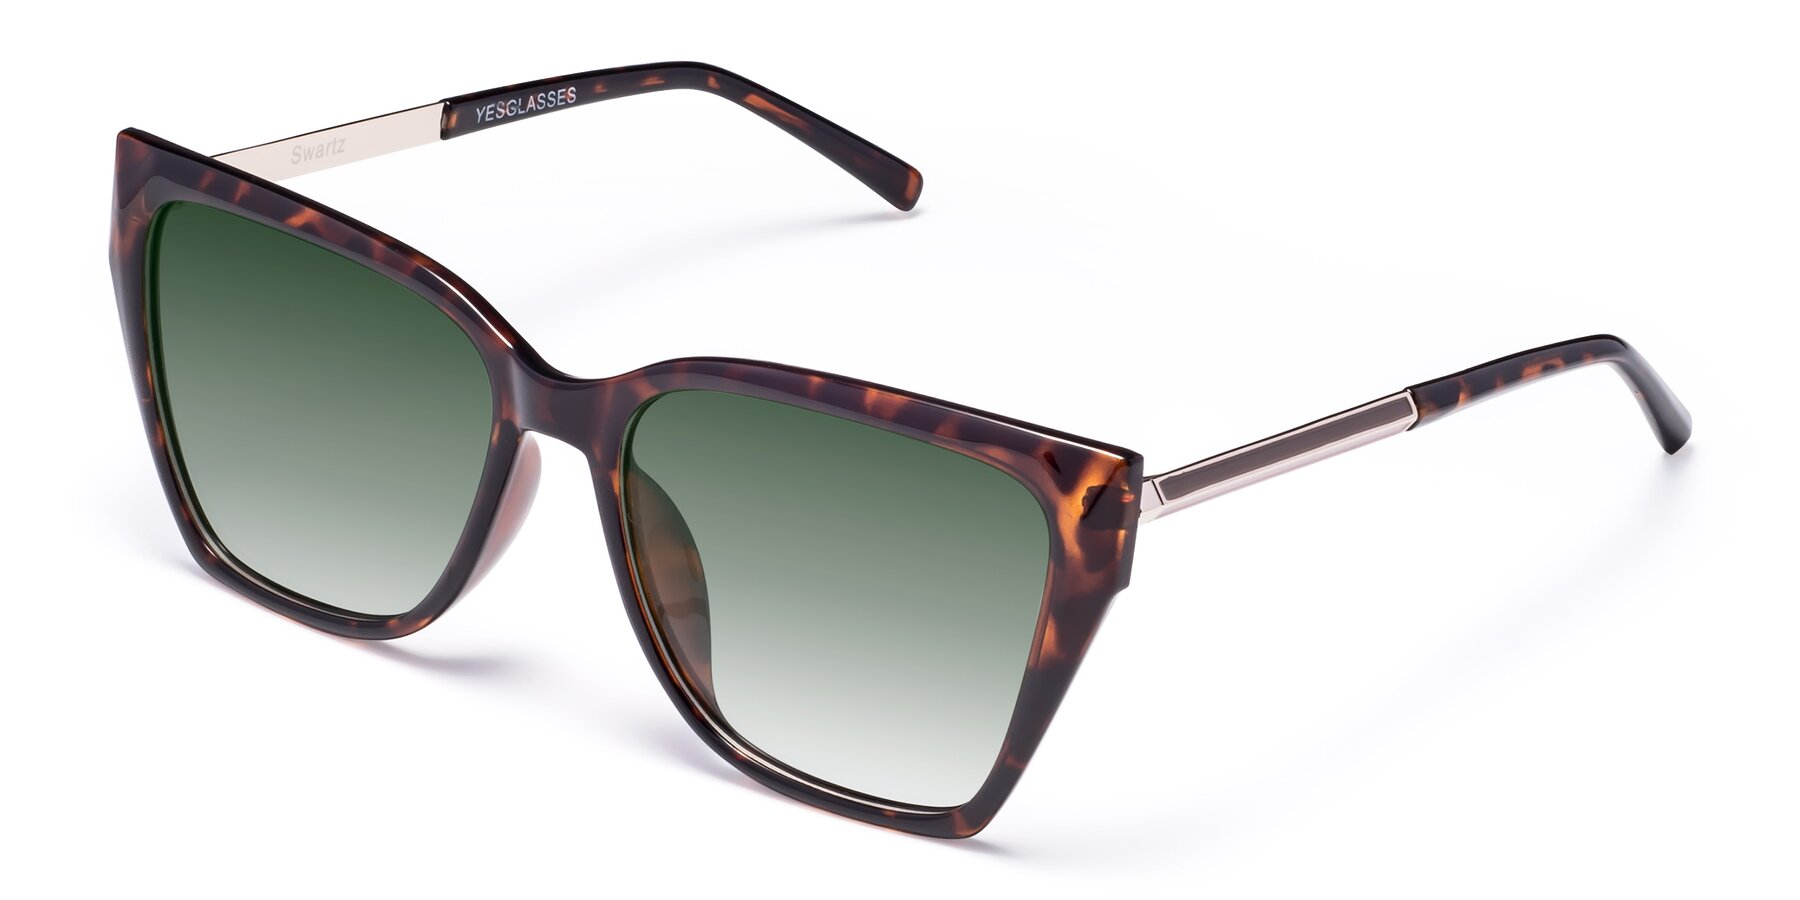 Angle of Swartz in Tortoise with Green Gradient Lenses